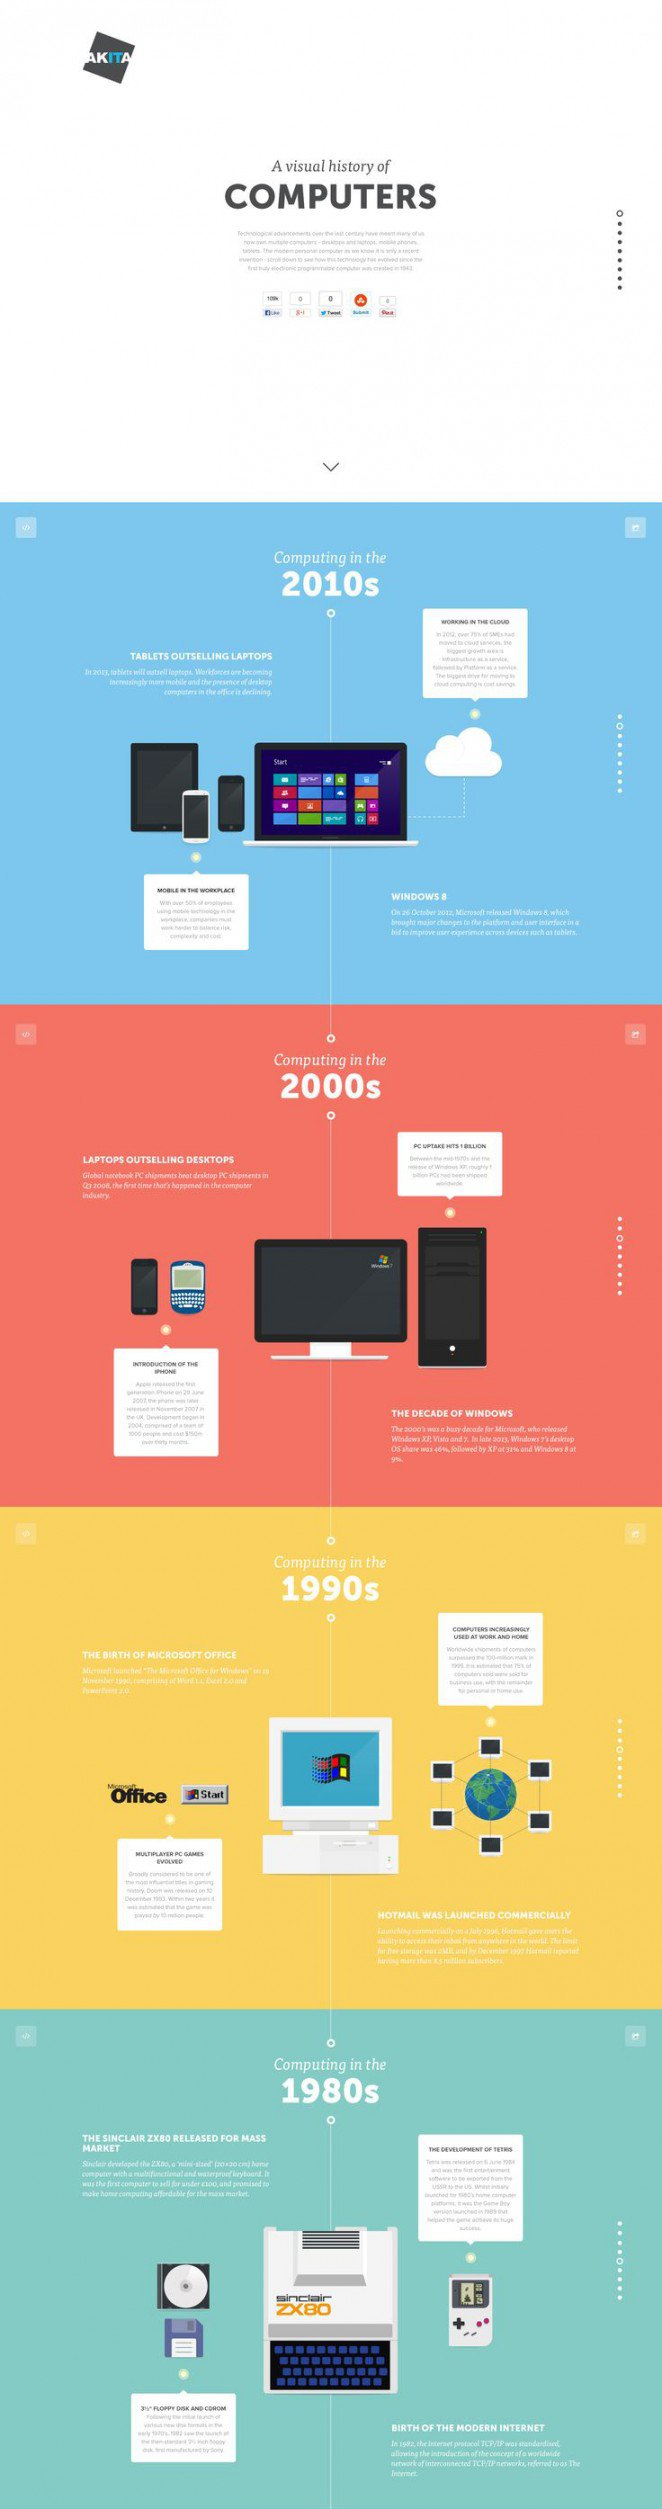 How to Create an Infographic for Your Site - Keep the Infographic Focused and the Design Simplistic